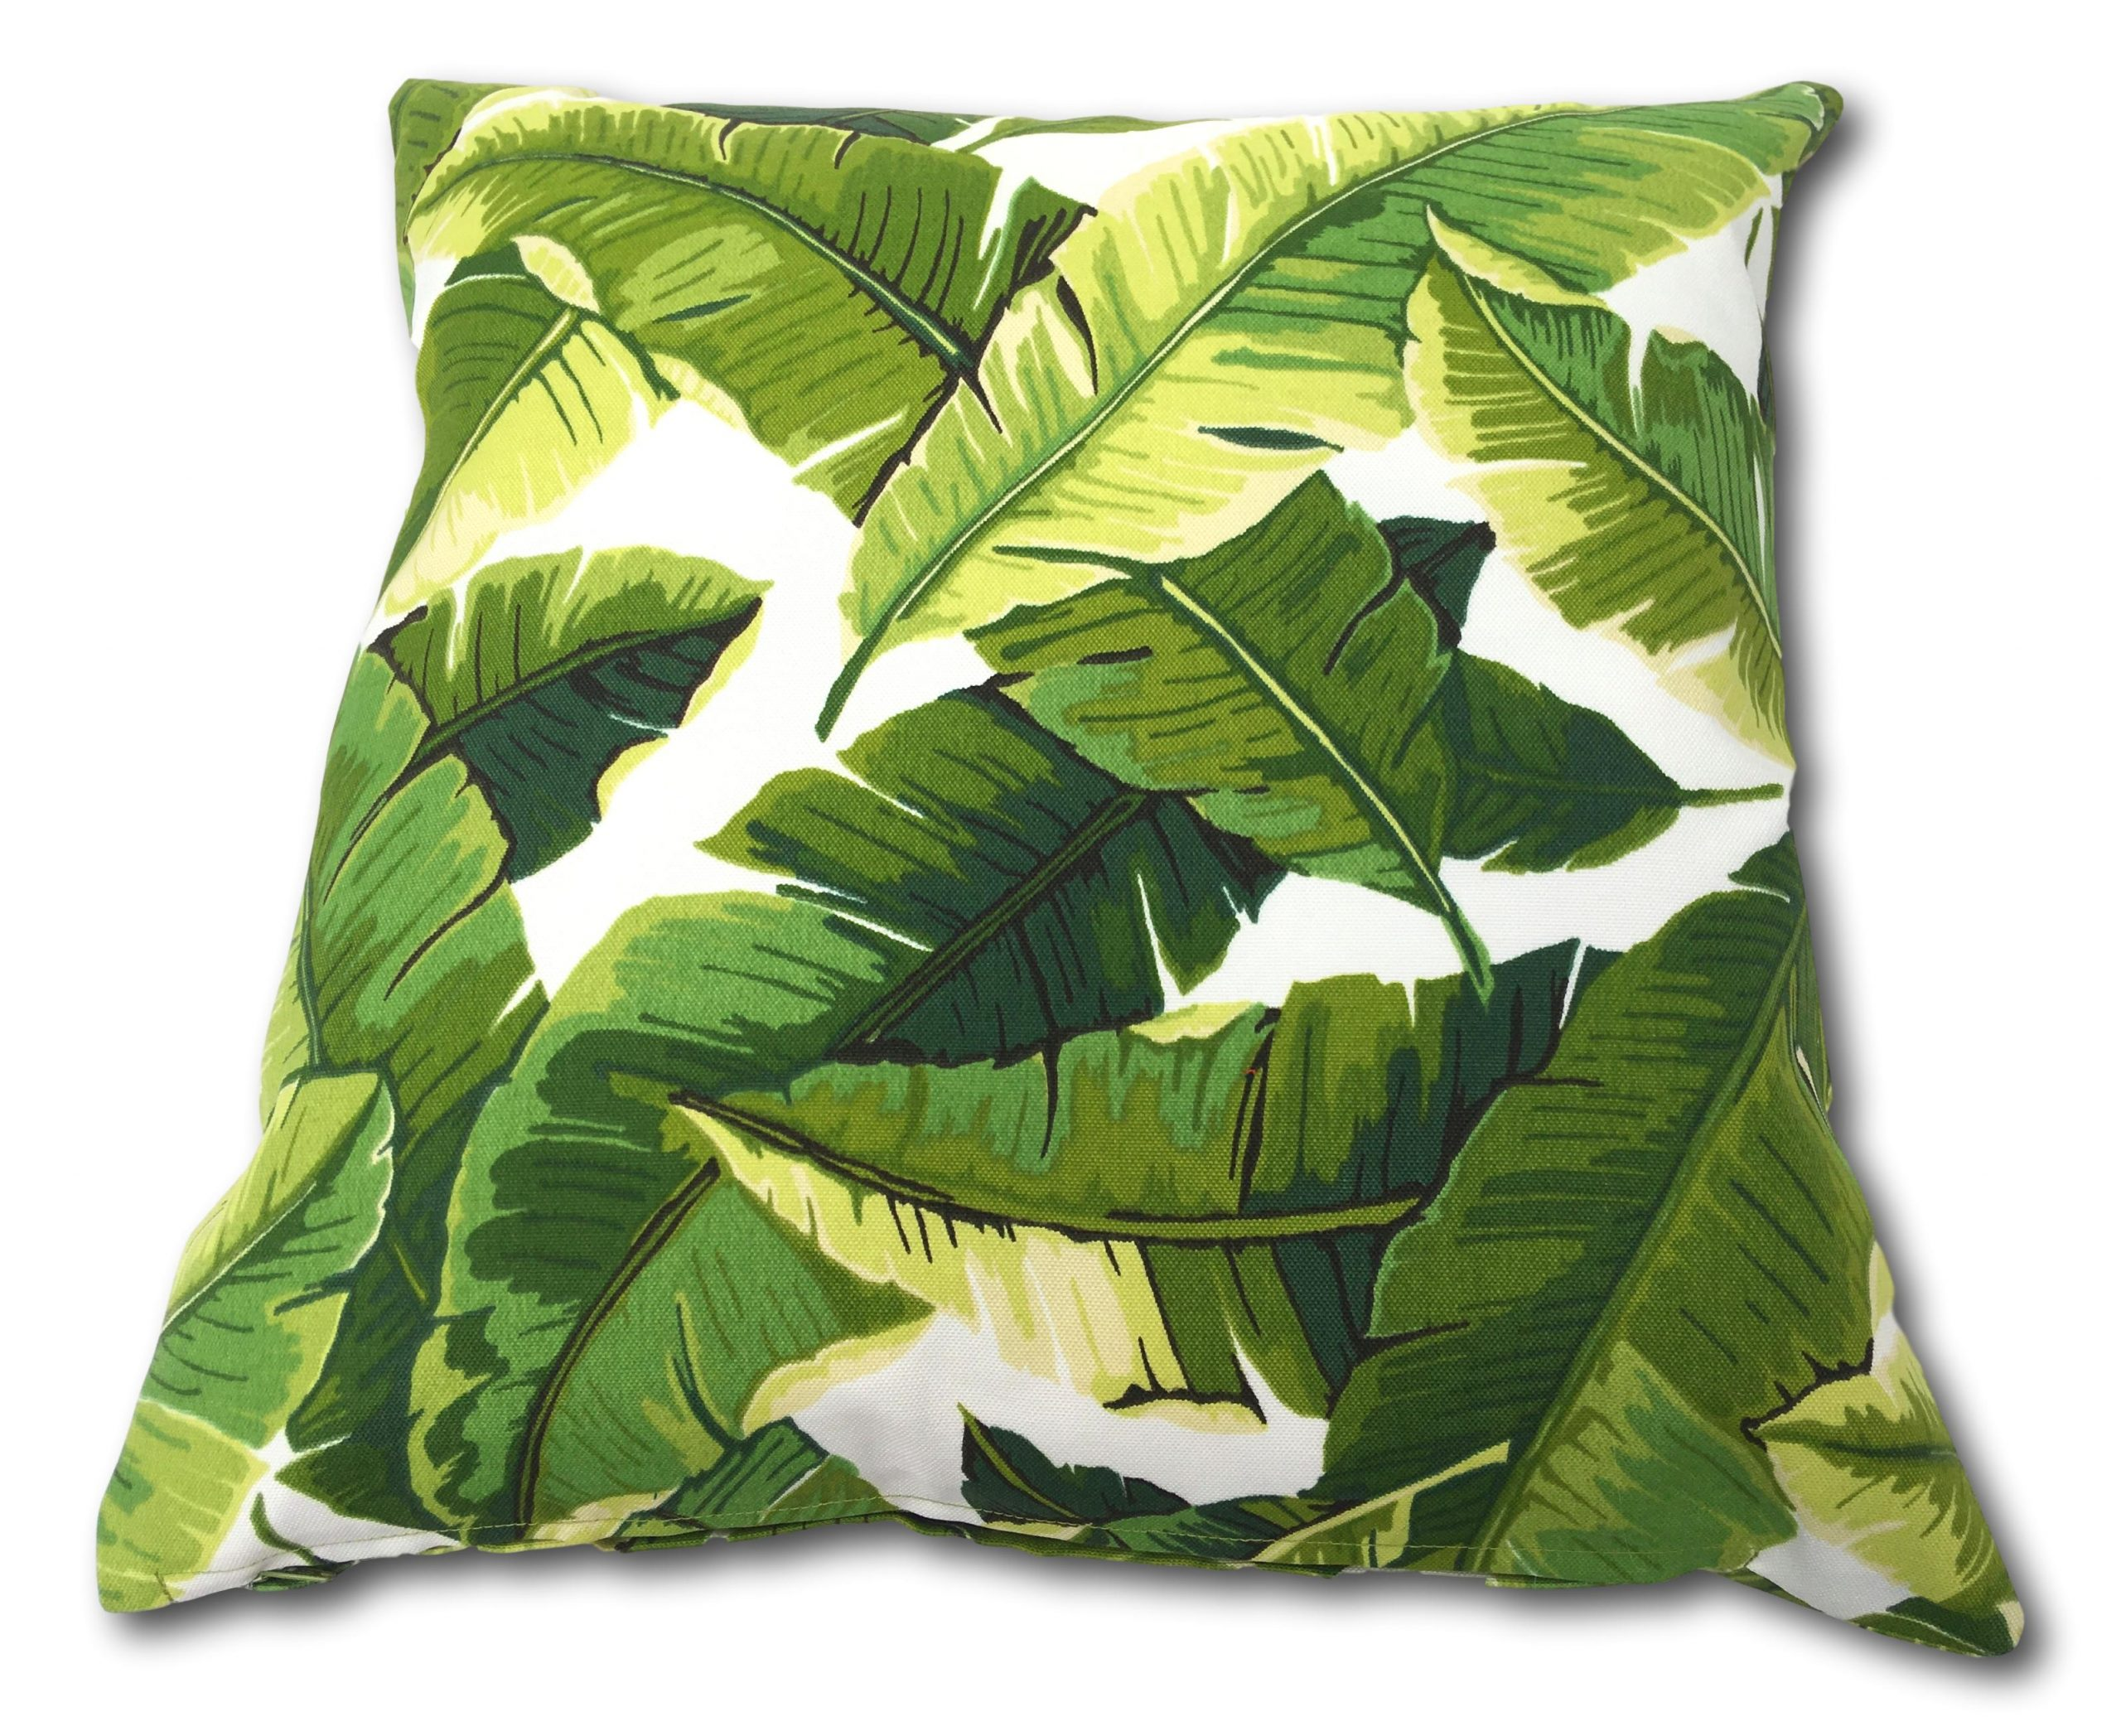 citrus palms showerproof cushion